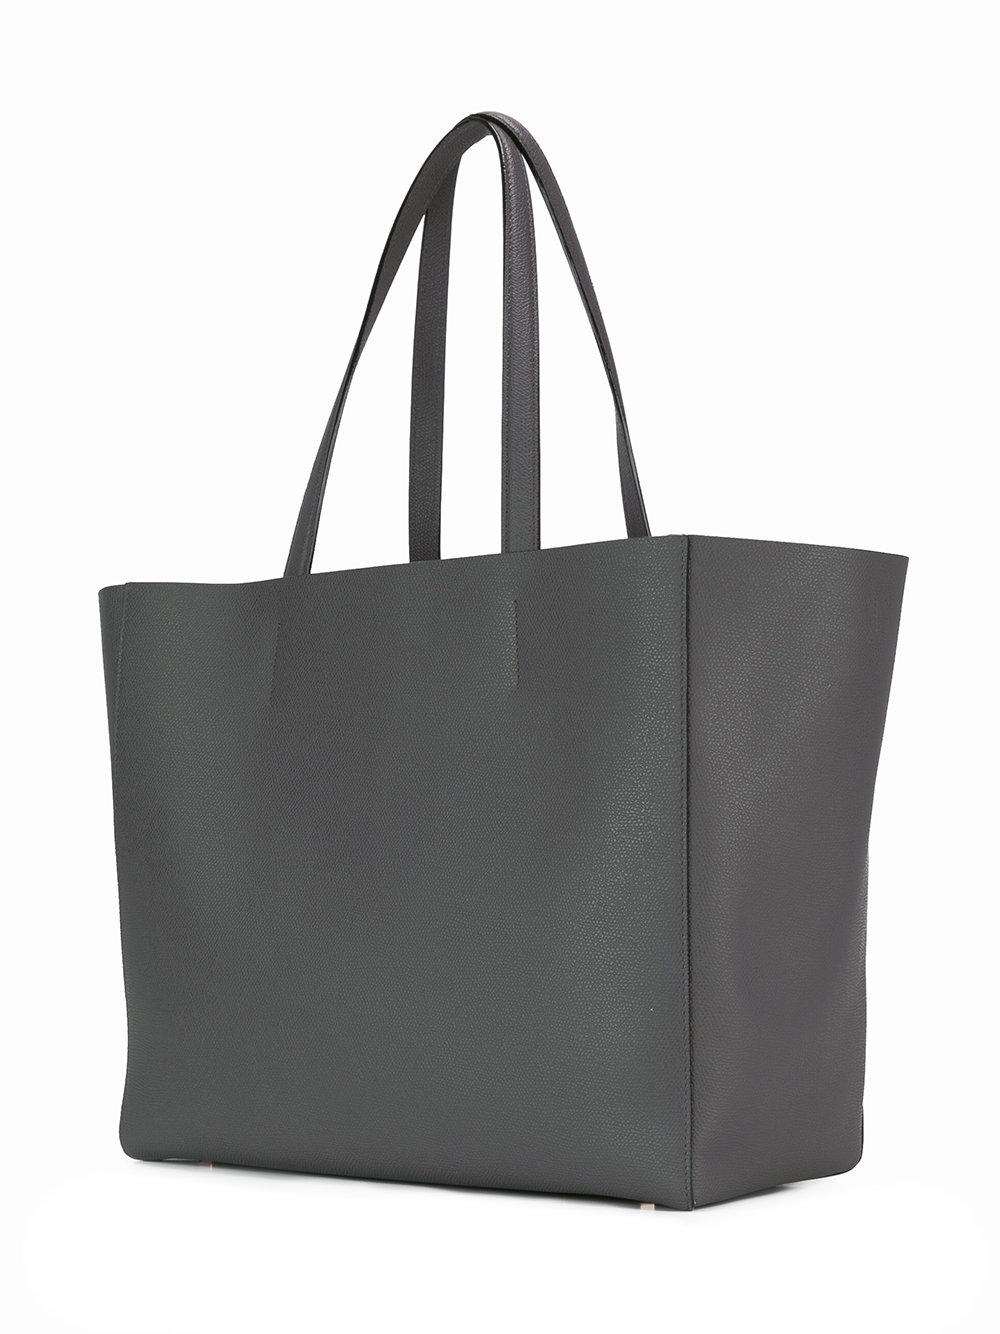 Valextra Leather Shopping Tote in Grey (Grey)